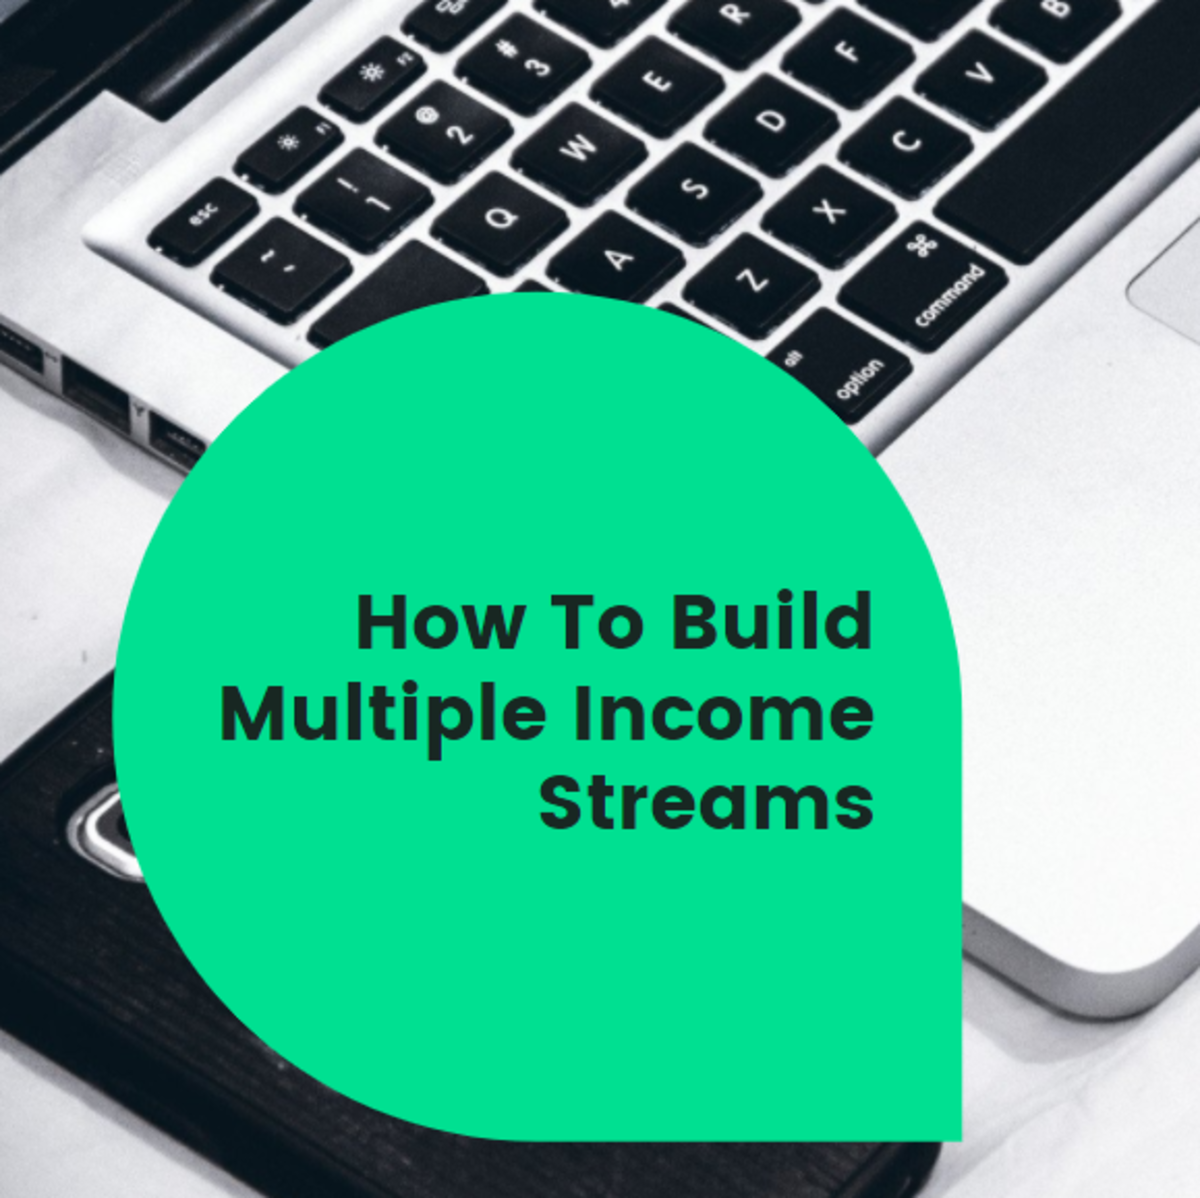 How To Build Multiple Income Streams.